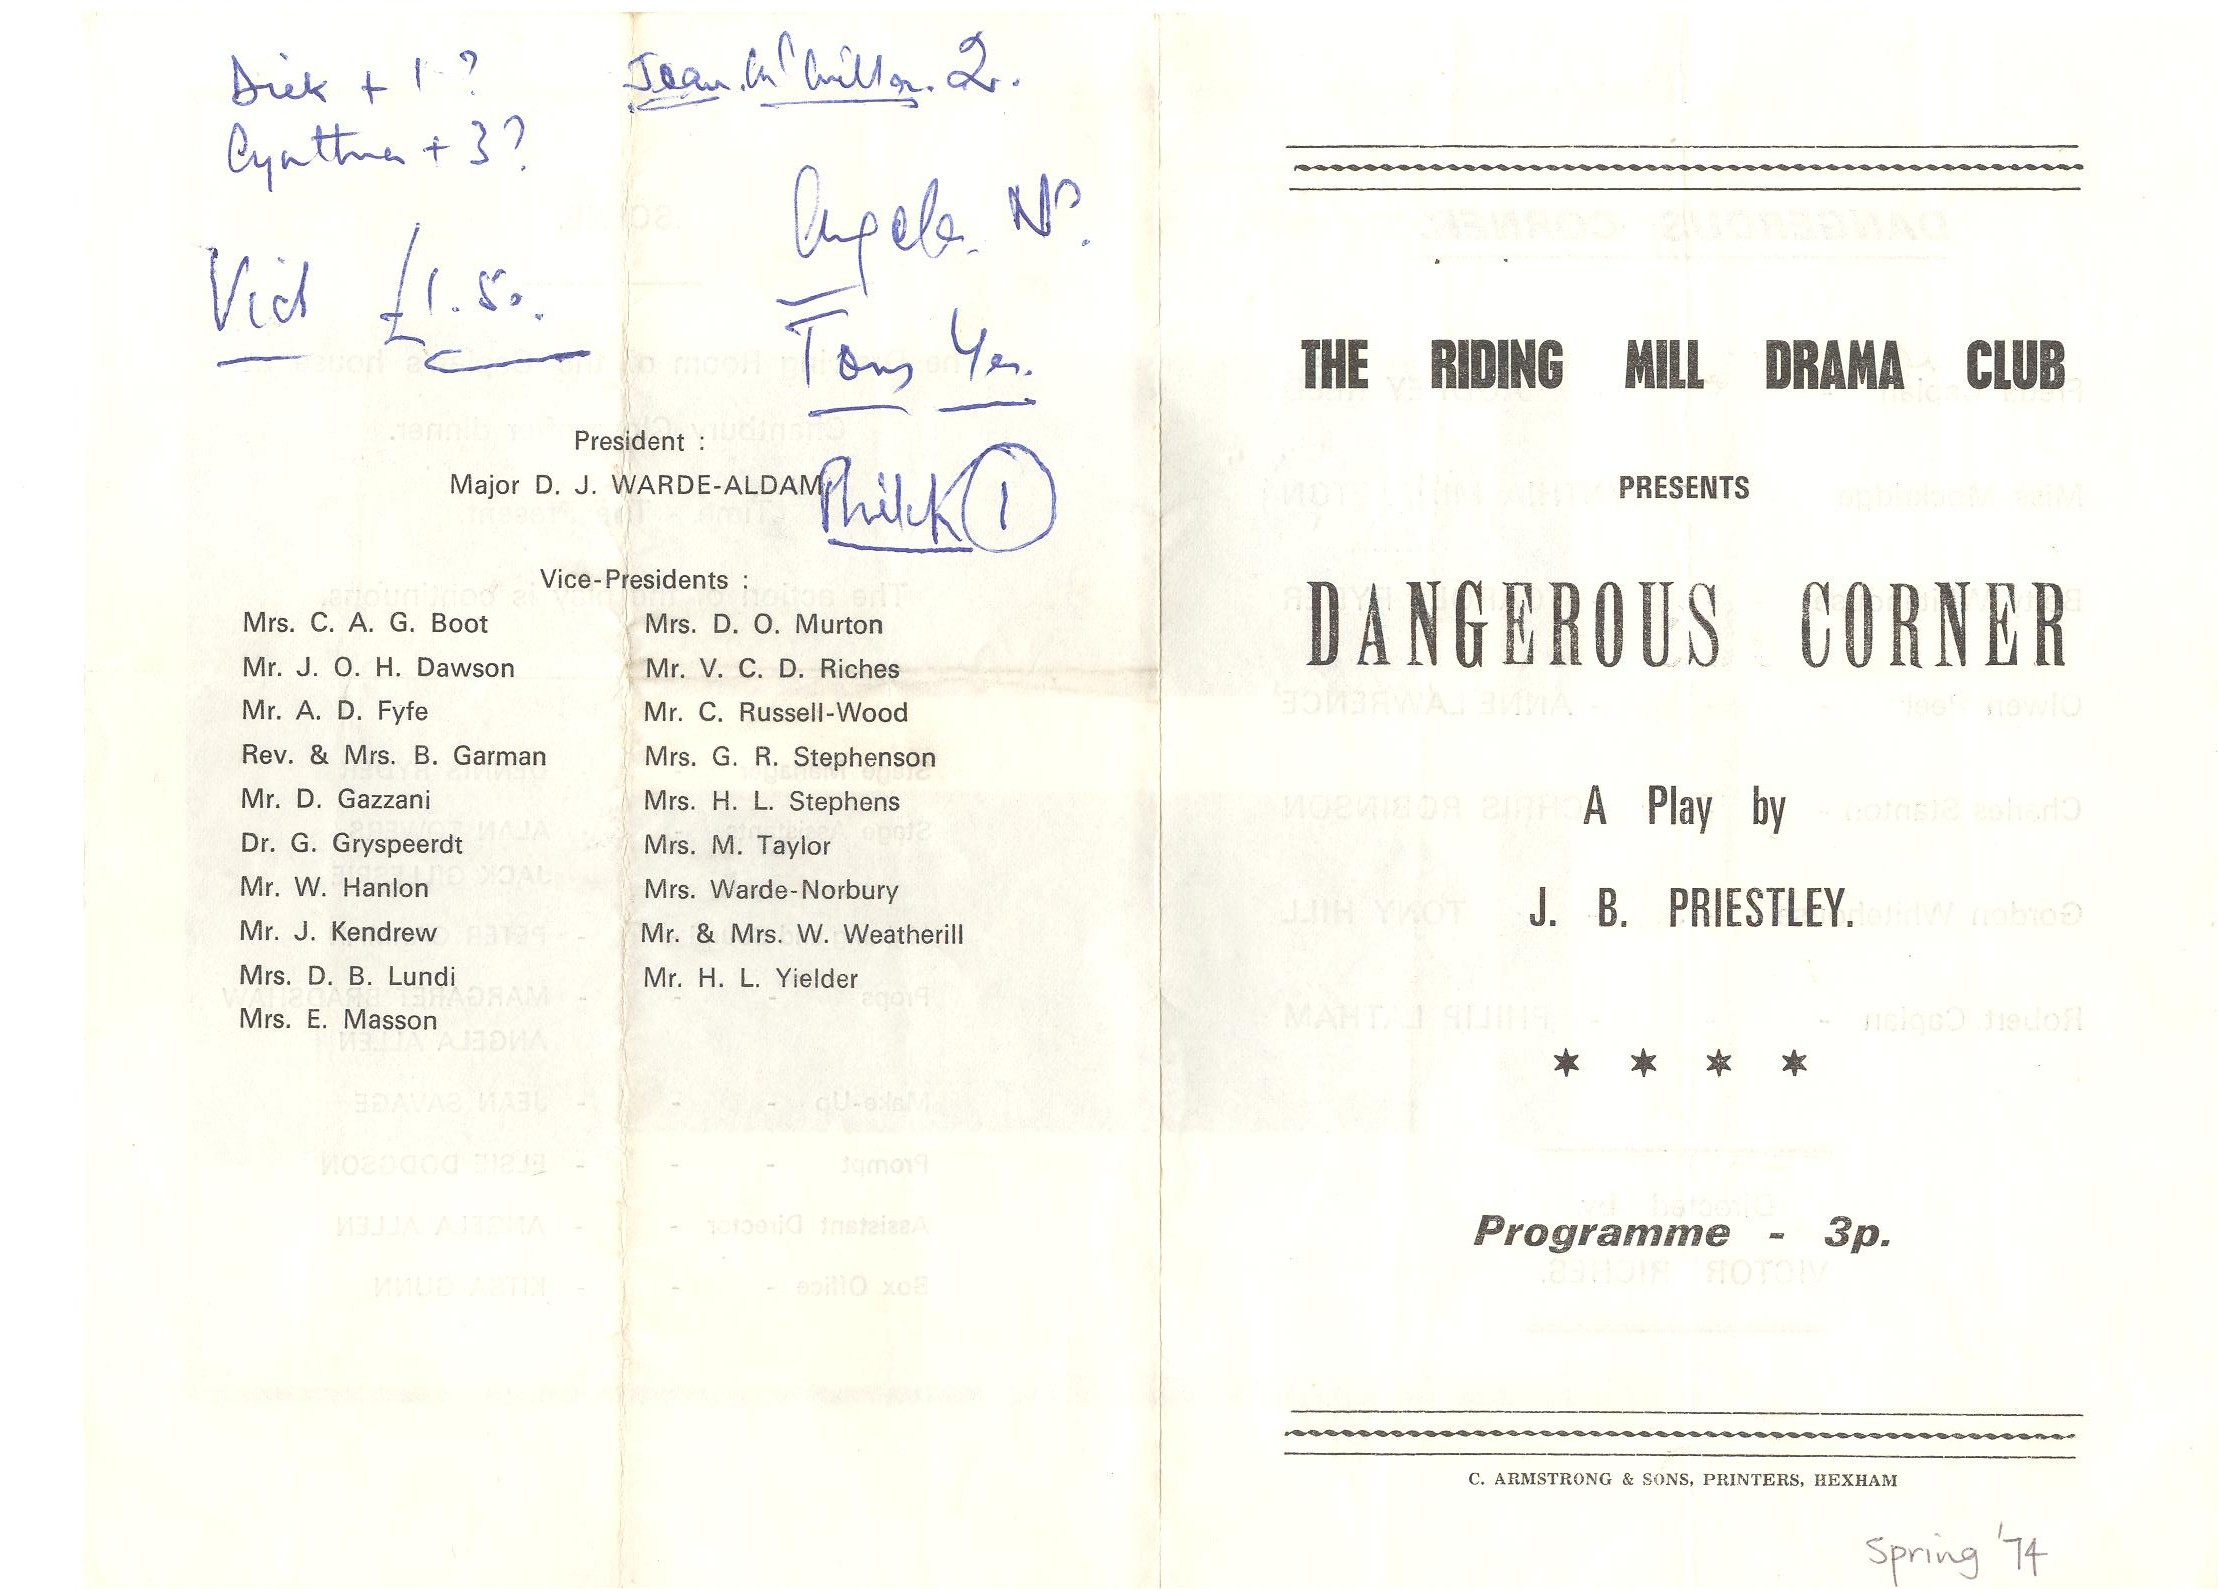 1974 Riding Mill Drama Club, Dangerous C